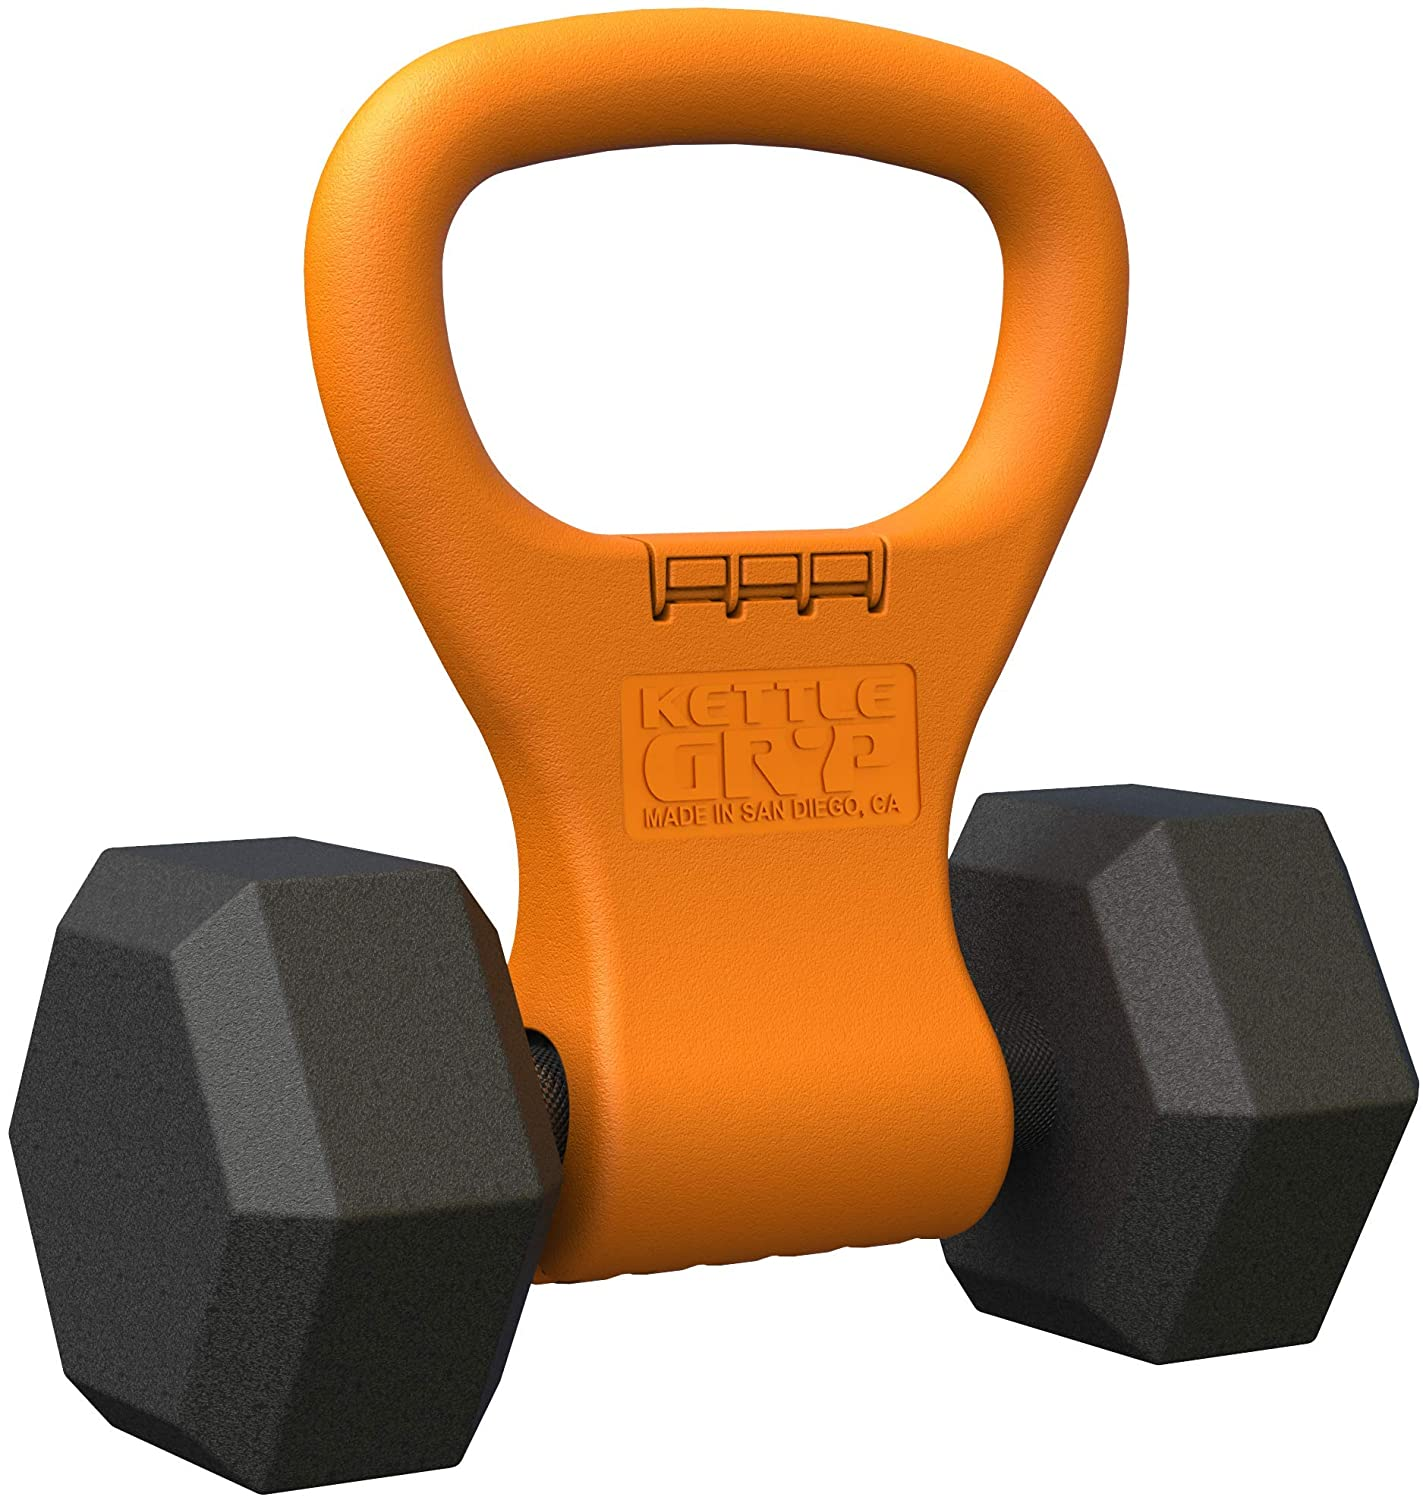 Kettle Gryp - Kettlebell Adjustable Portable Weight Grip Travel Workout Equipment Gear